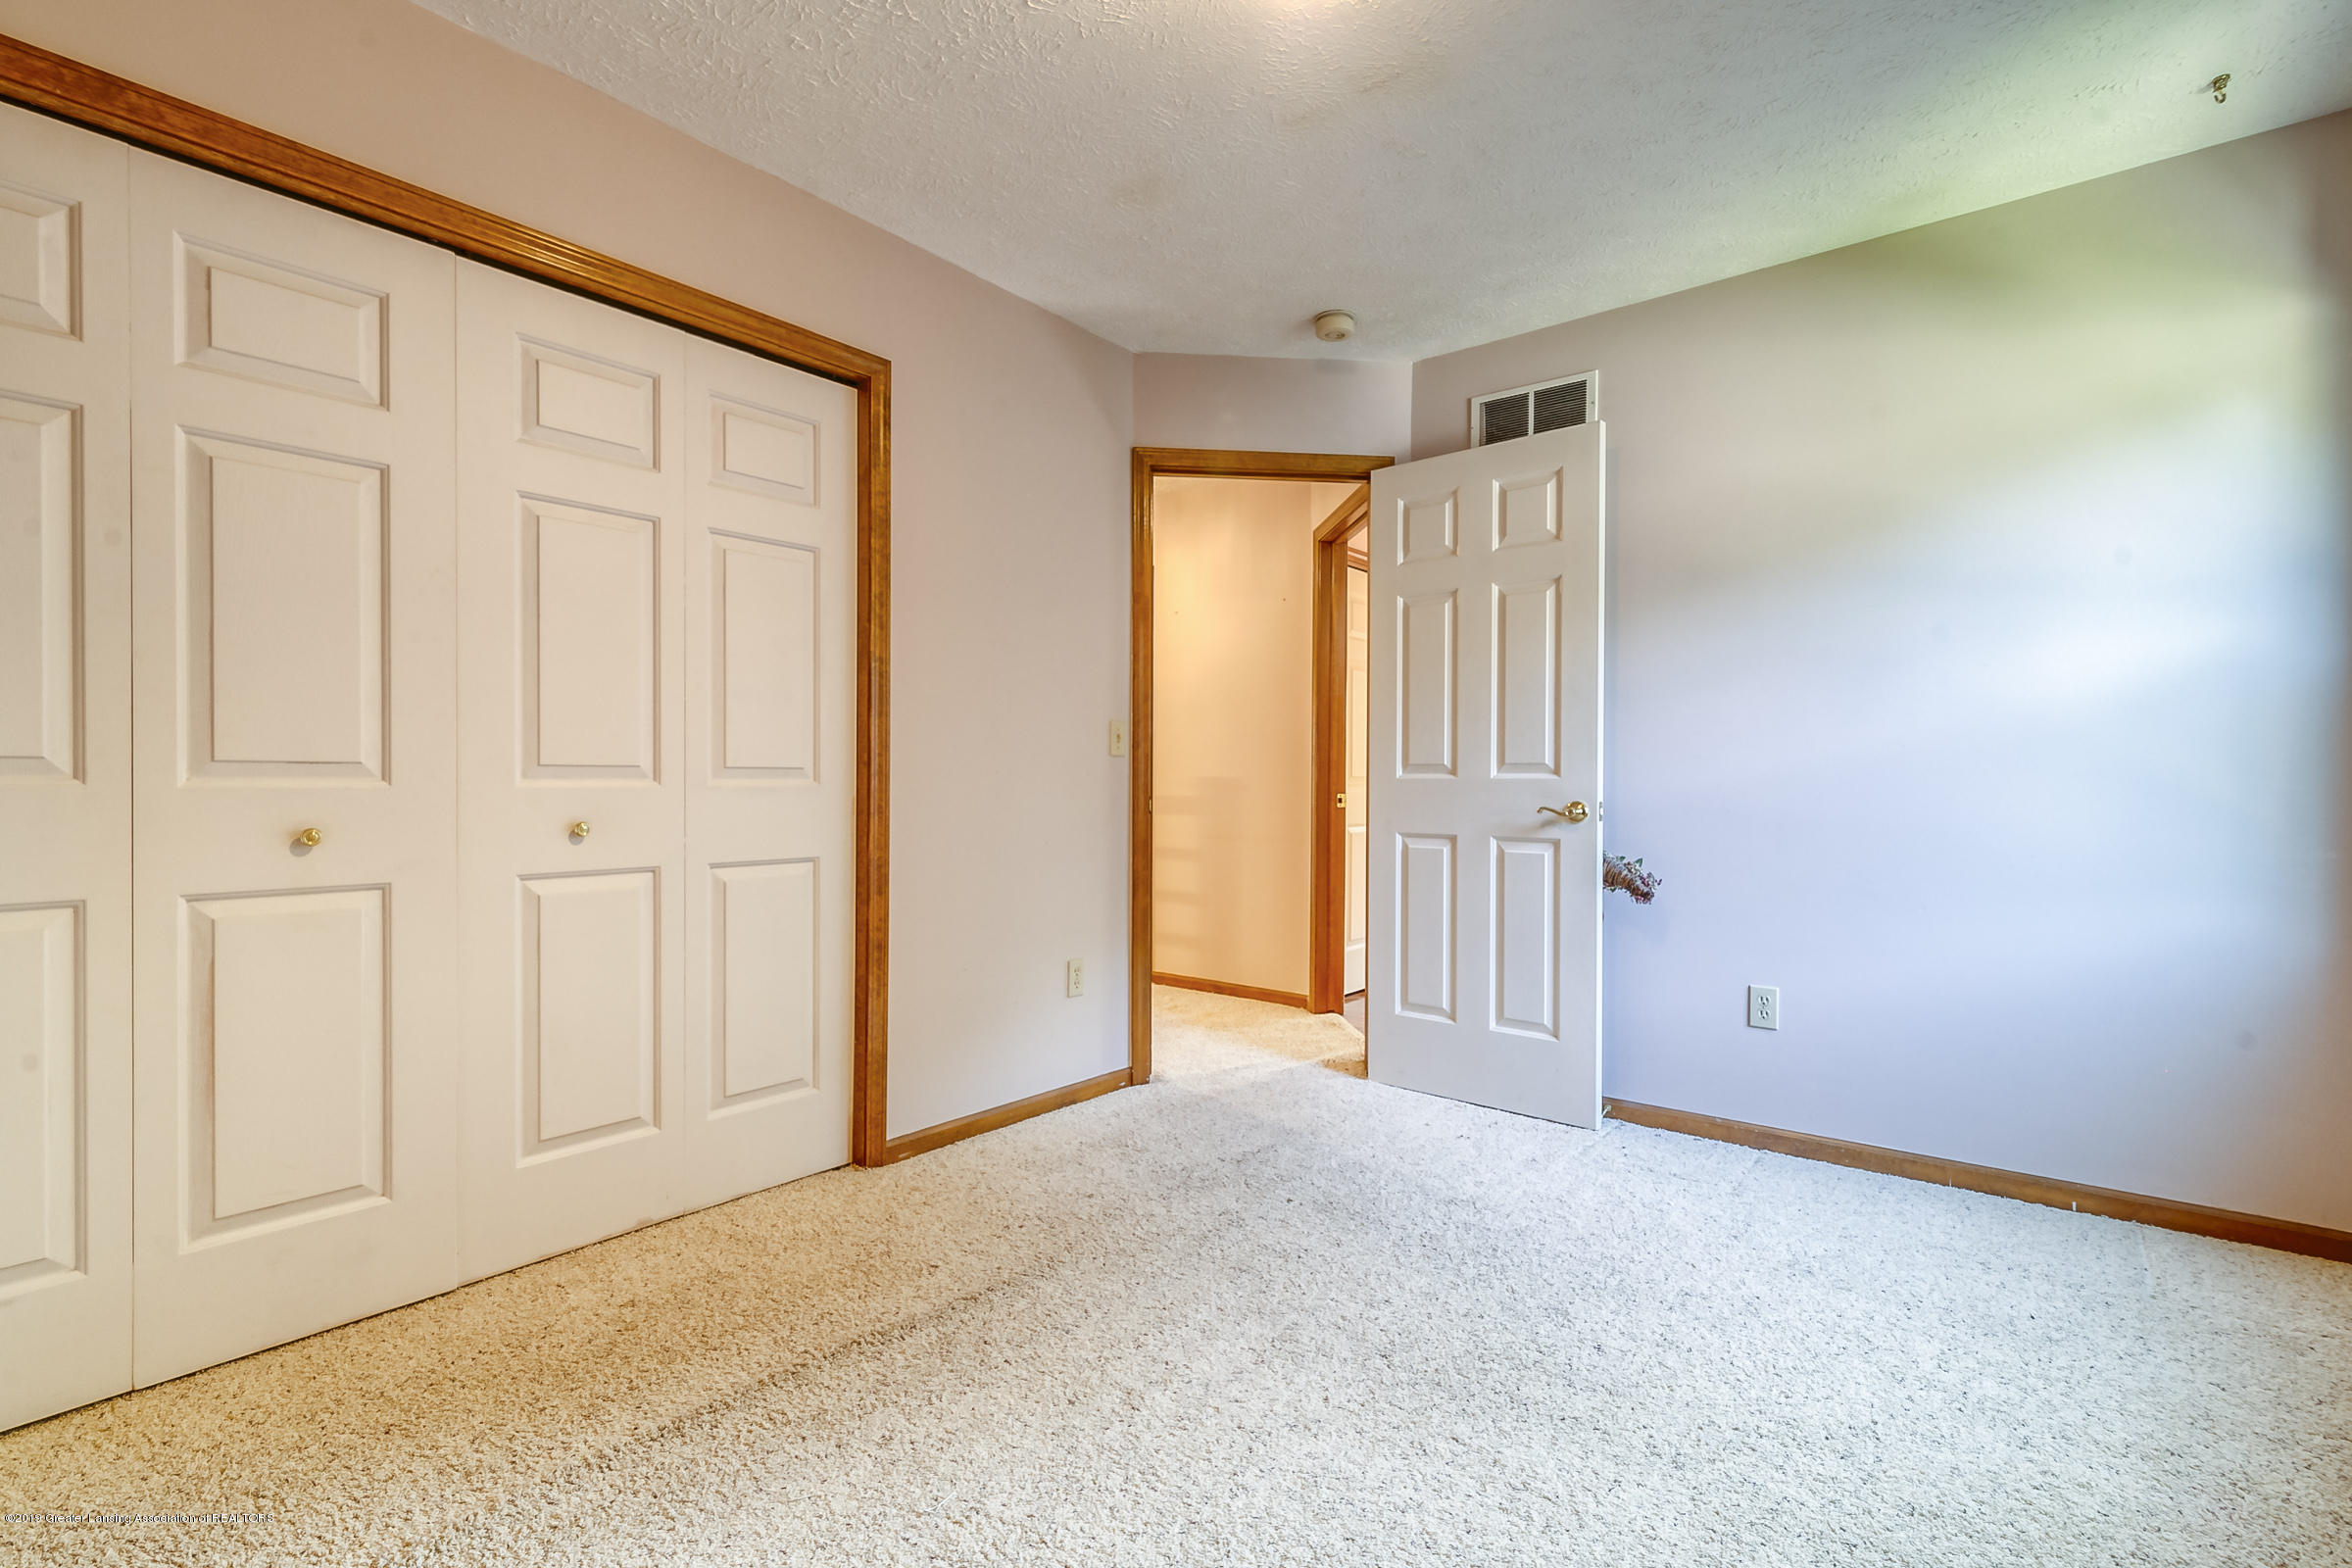 2343 Chisholm Ct - BEDROOM - 24